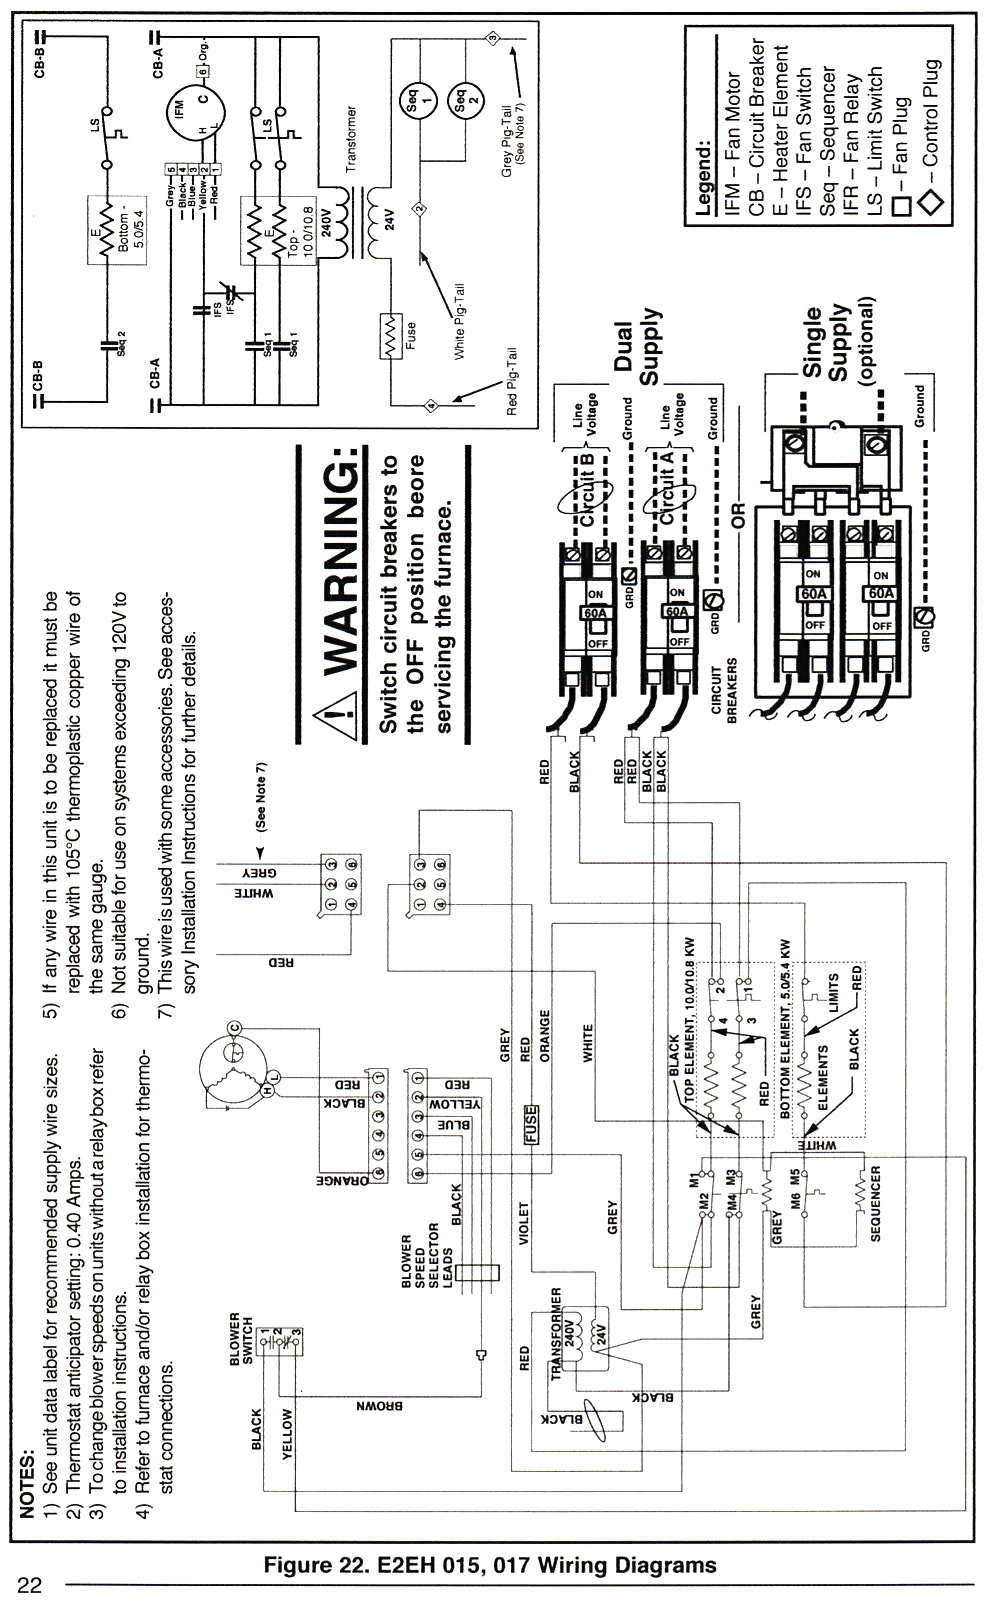 Tappan Air Conditioner Wiring Diagram Library Ac Unit Diagrams Nordyne Package Smart U2022 Condensing